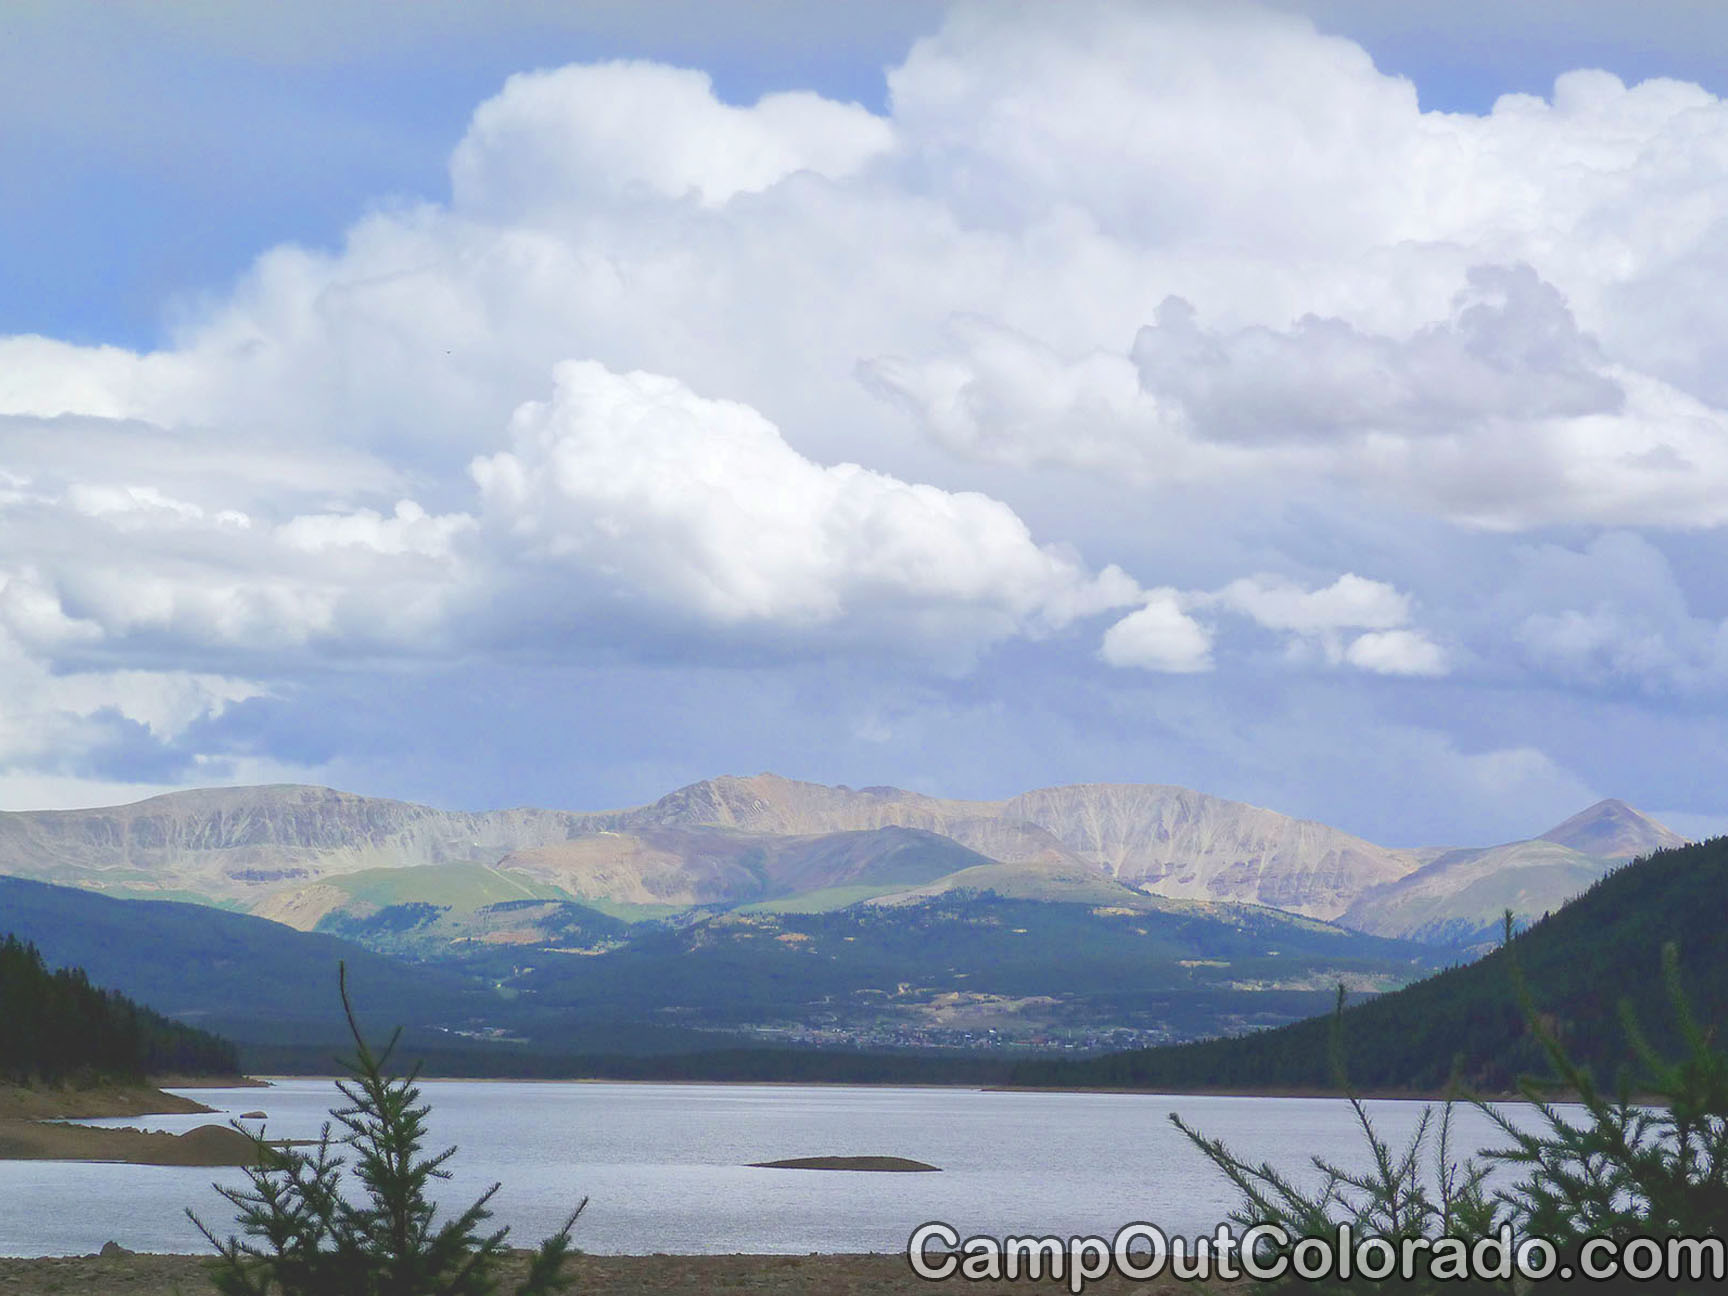 Camp-out-colorado-turquoise-lake-vista